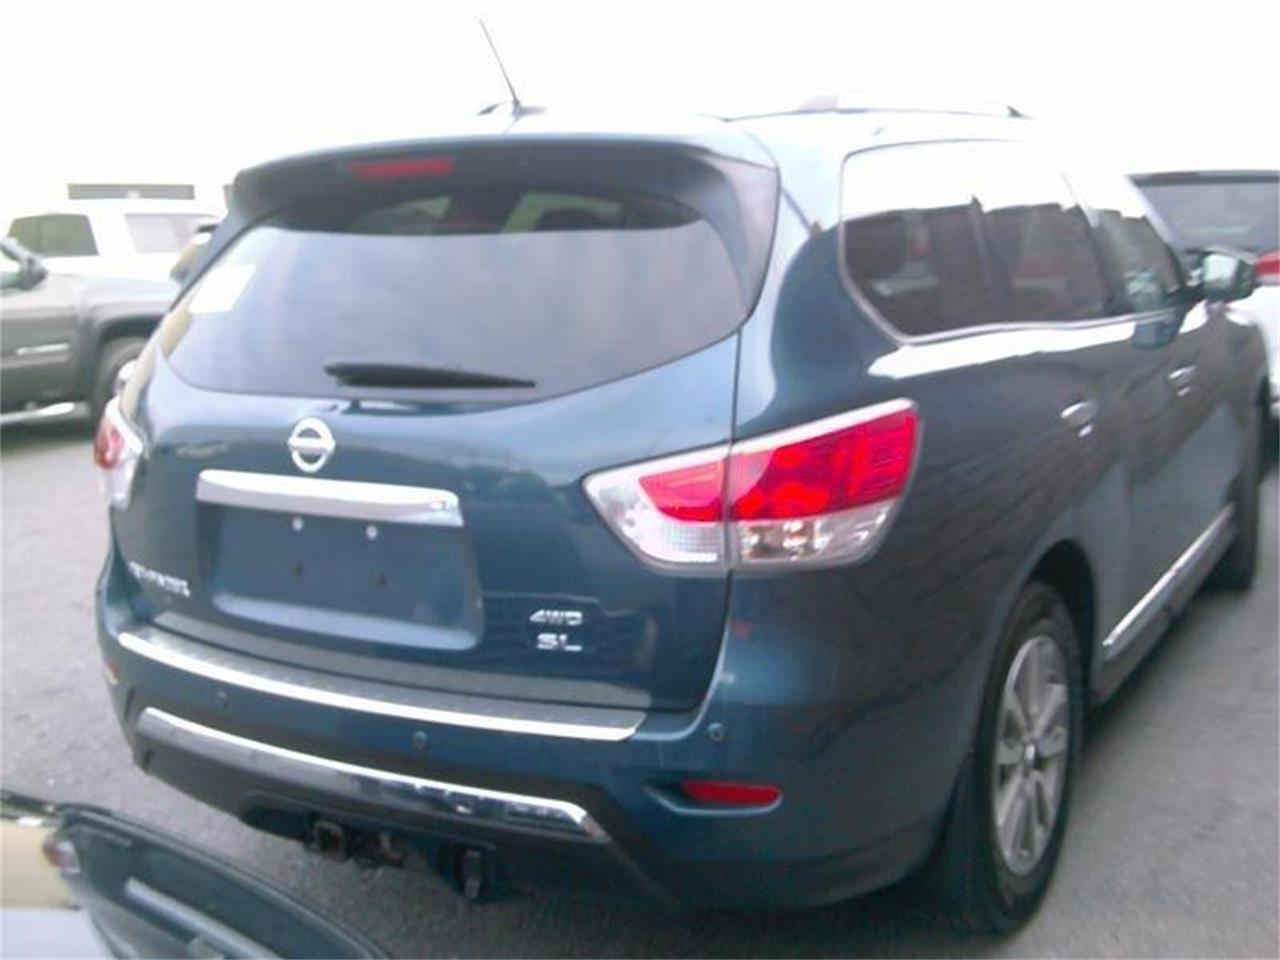 Large Picture of 2014 Nissan Pathfinder located in Hilton New York - $16,495.00 - PVK0